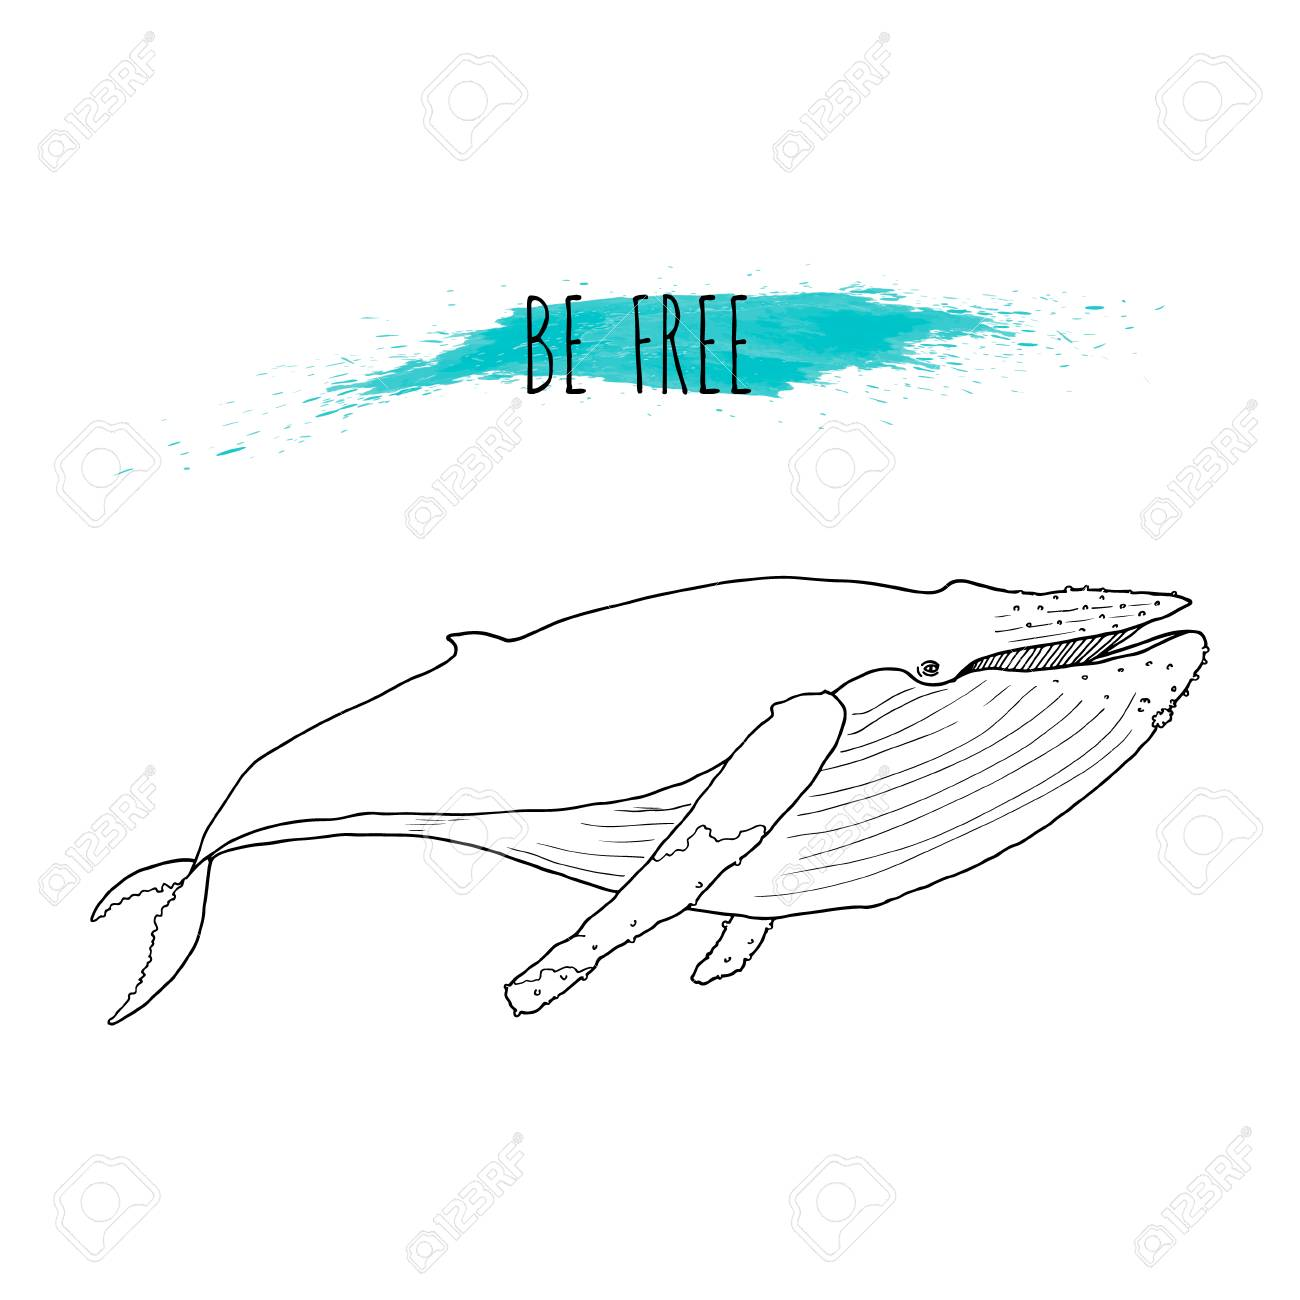 Illustration Vectorielle De Baleine A Bosse Dessines A La Main